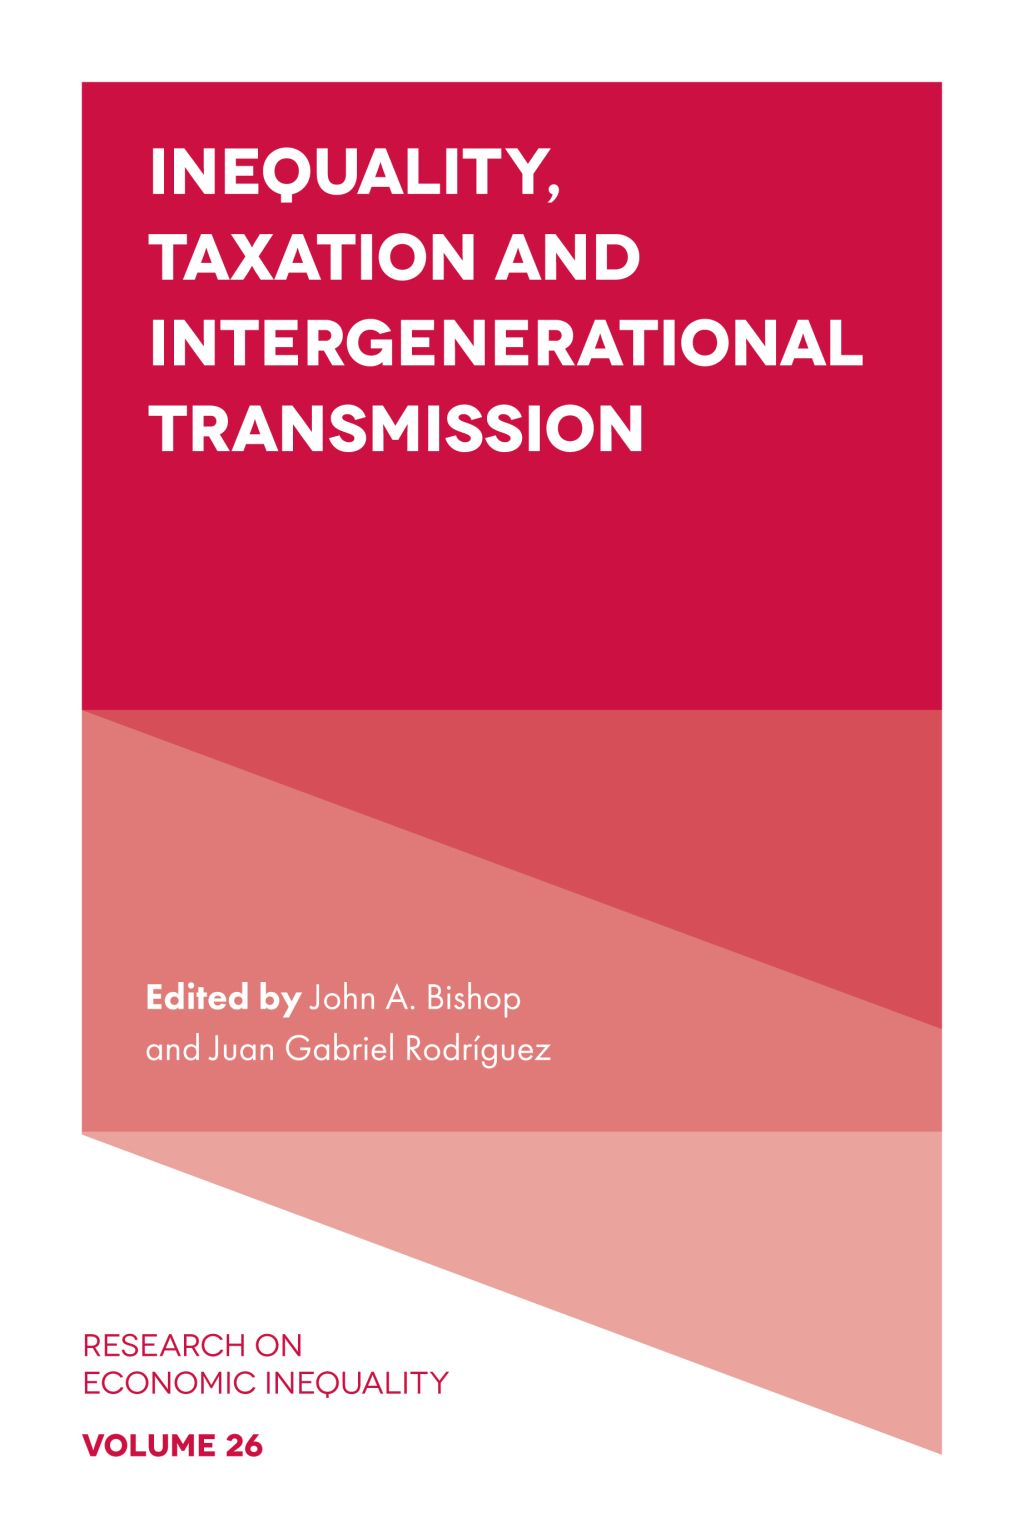 Inequality Taxation and Intergenerational Transmission